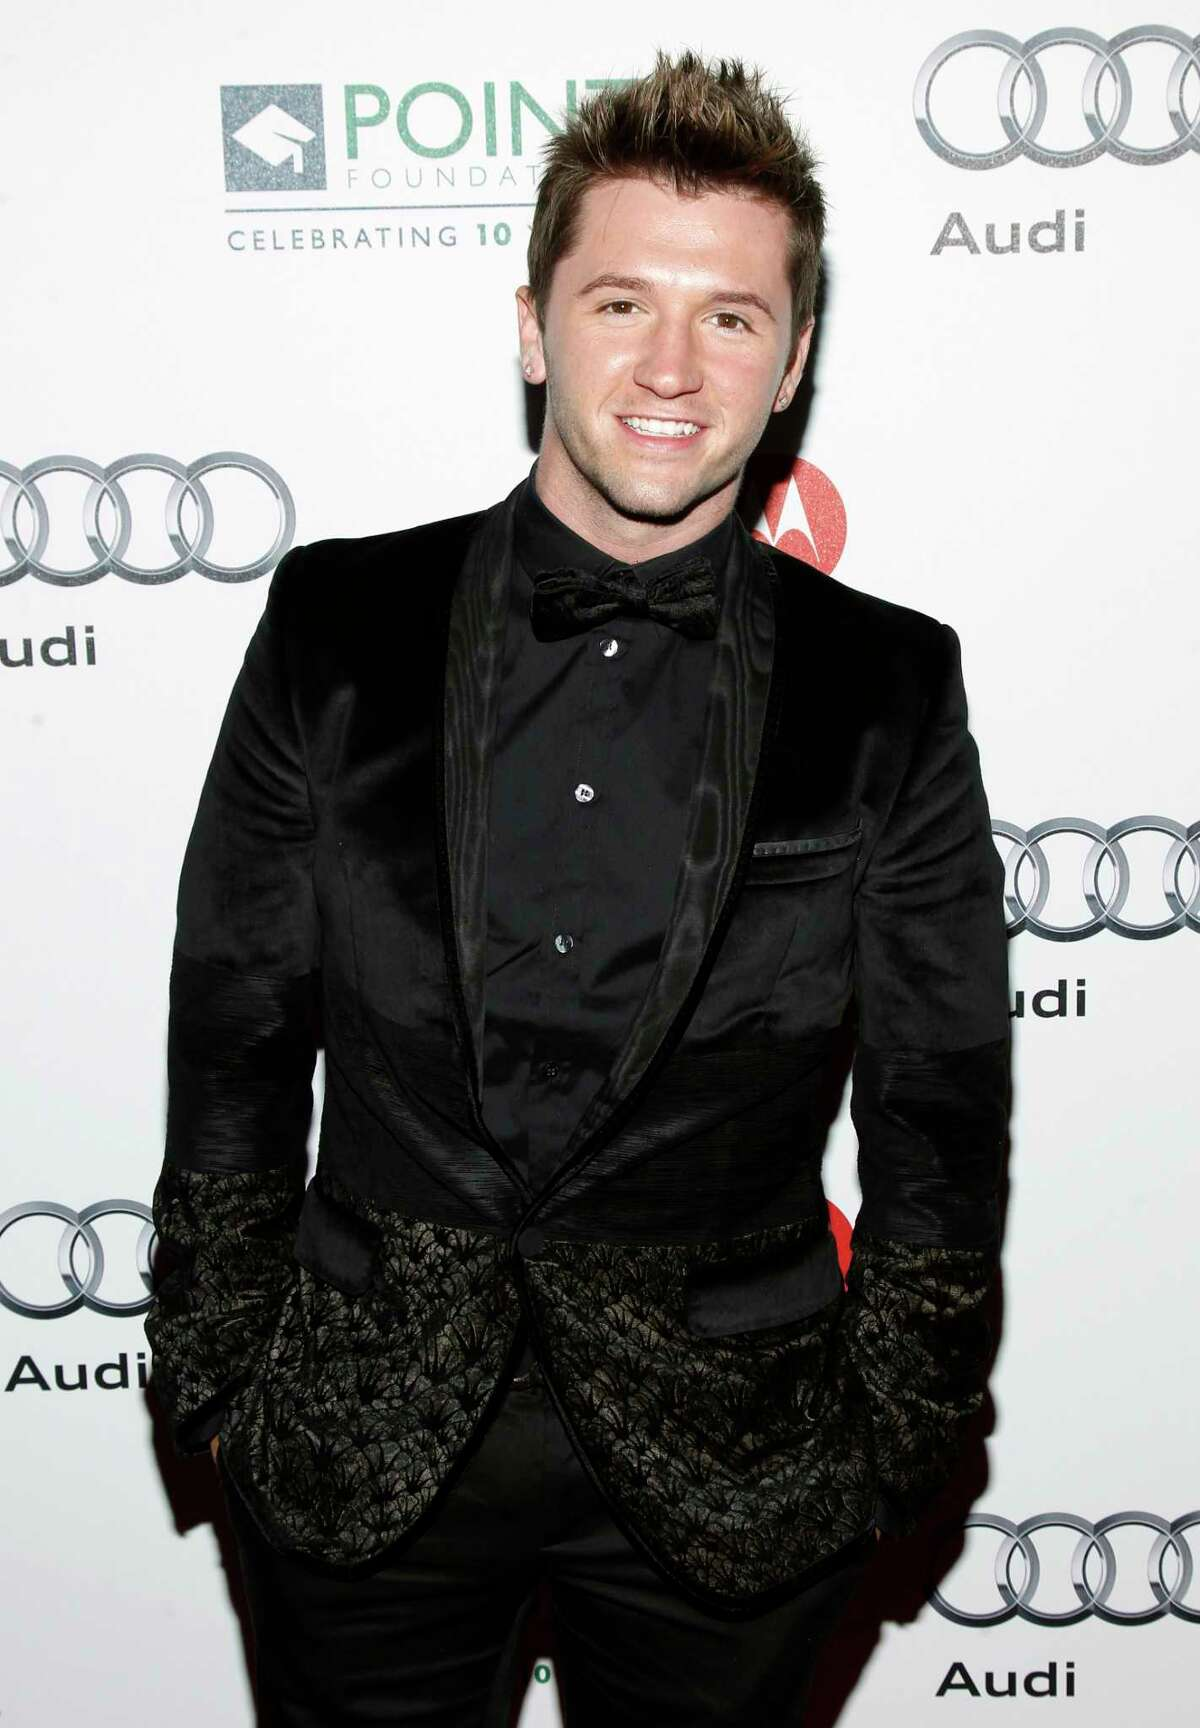 COMMERCIAL IMAGE - In this photo taken by AP Images for Point Foundation, Travis Wall is seen at Point Honors 10th Anniversary Gala on Saturday, Sept. 24, 2011, in Los Angeles. (Joe Kohen/AP Images for Point Foundation)